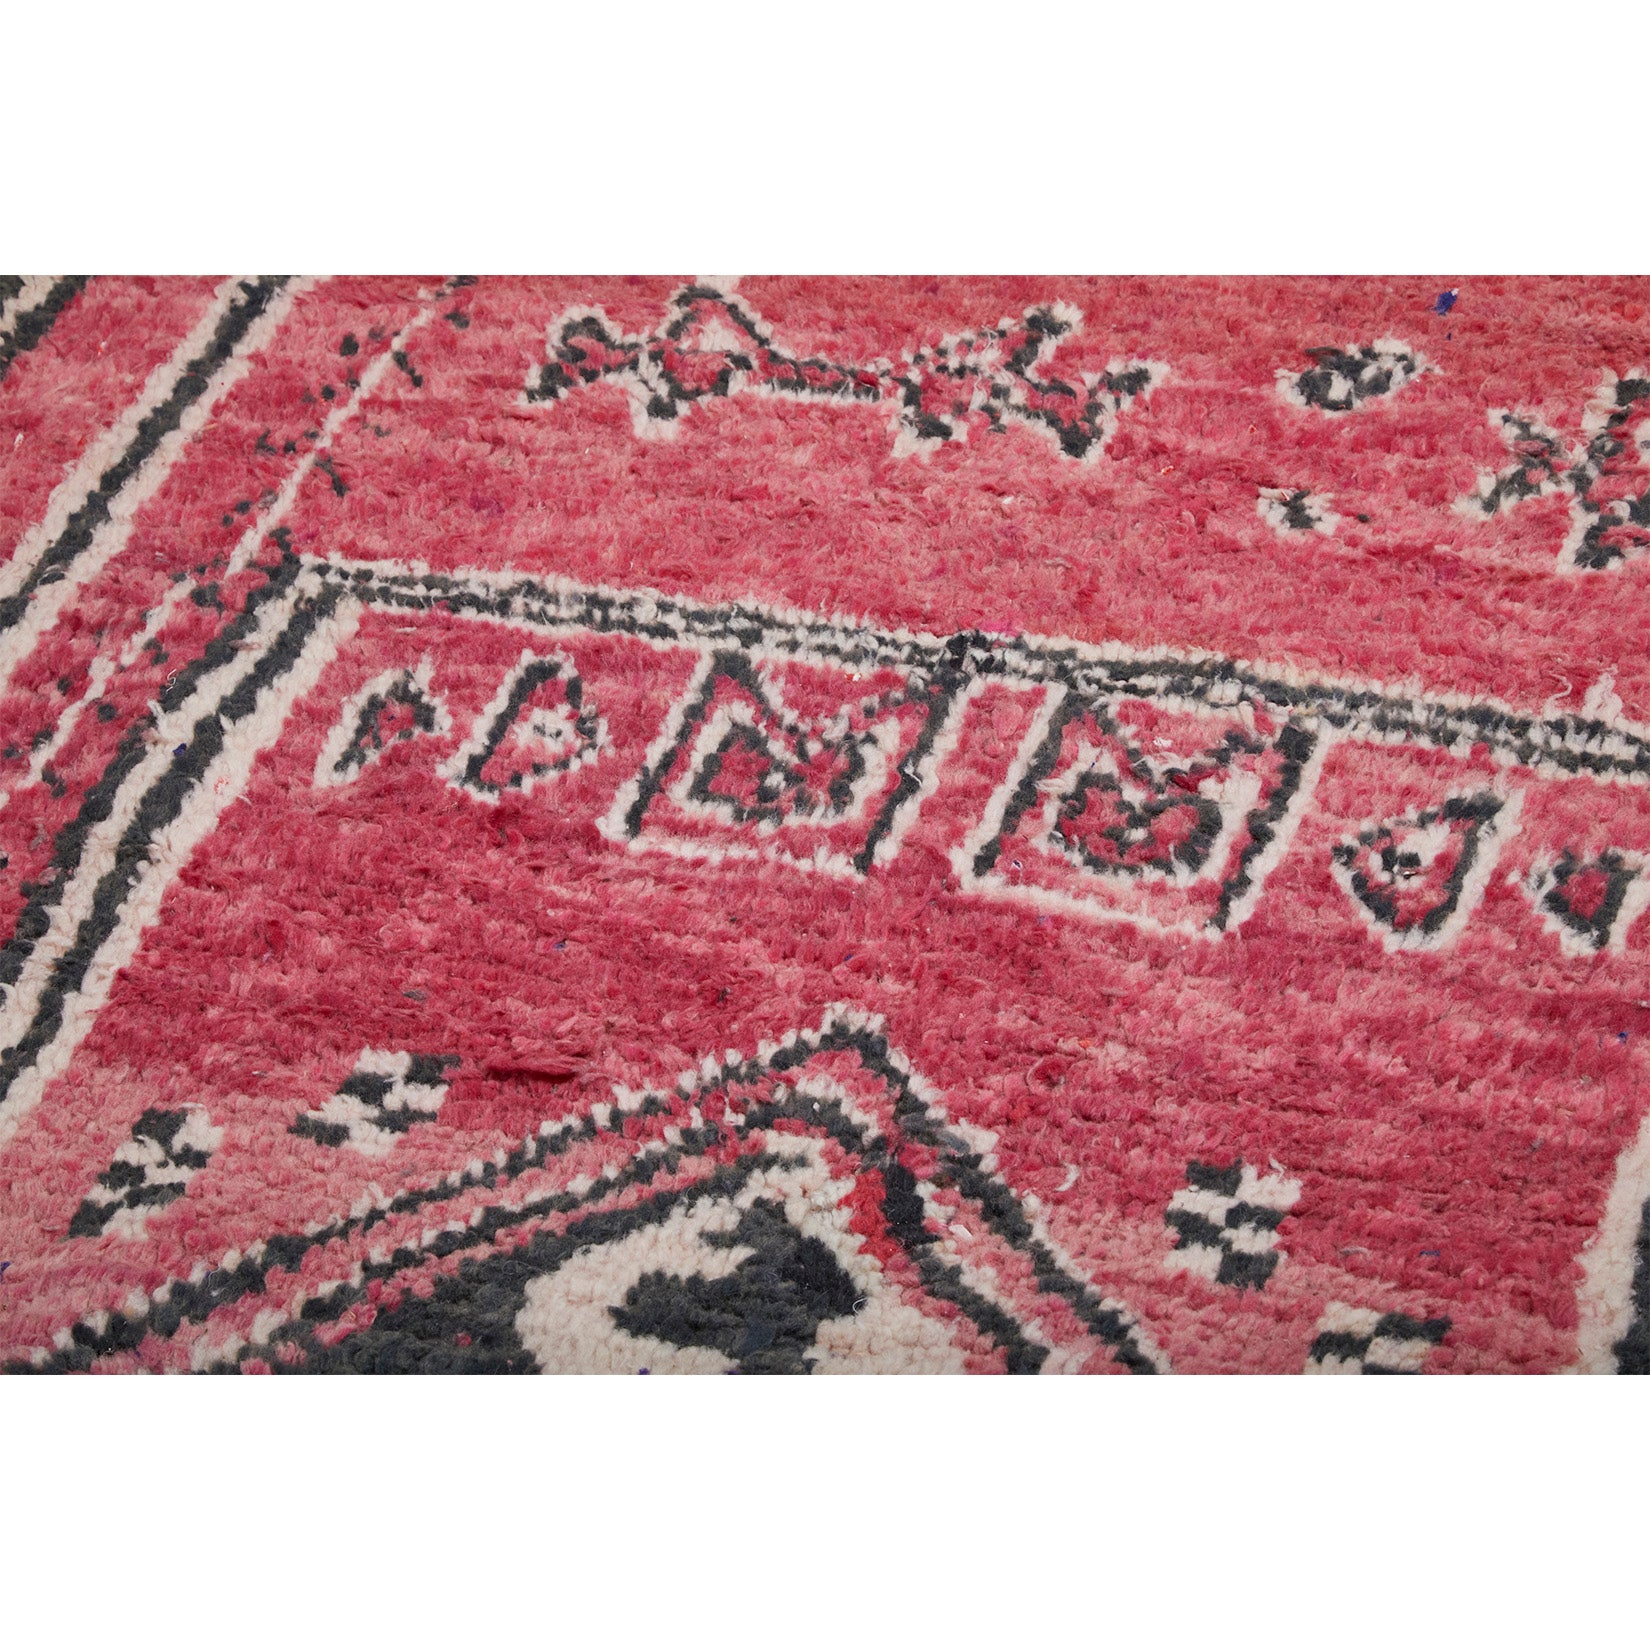 Authentic handknotted red berber rug - Kantara | Moroccan Rugs